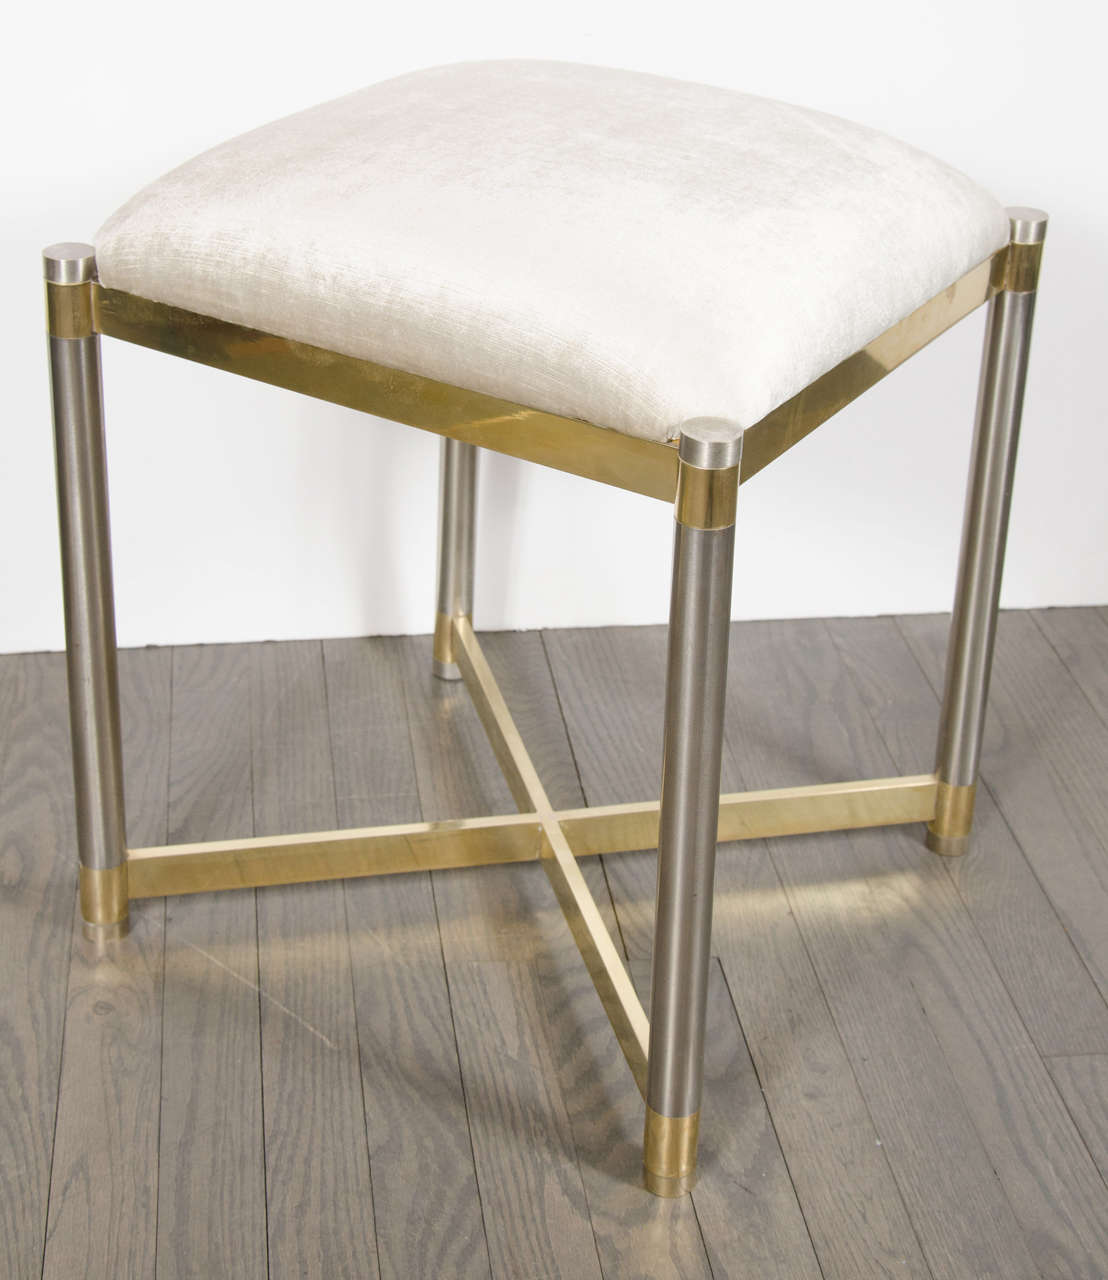 This sophisticated Mid-Century Modernist X-Form Stool in the manner of Karl Springer was realized in the United States, circa 1970. It features brushed cylindrical chrome legs banded in brass with a brass x-form support at its base and an